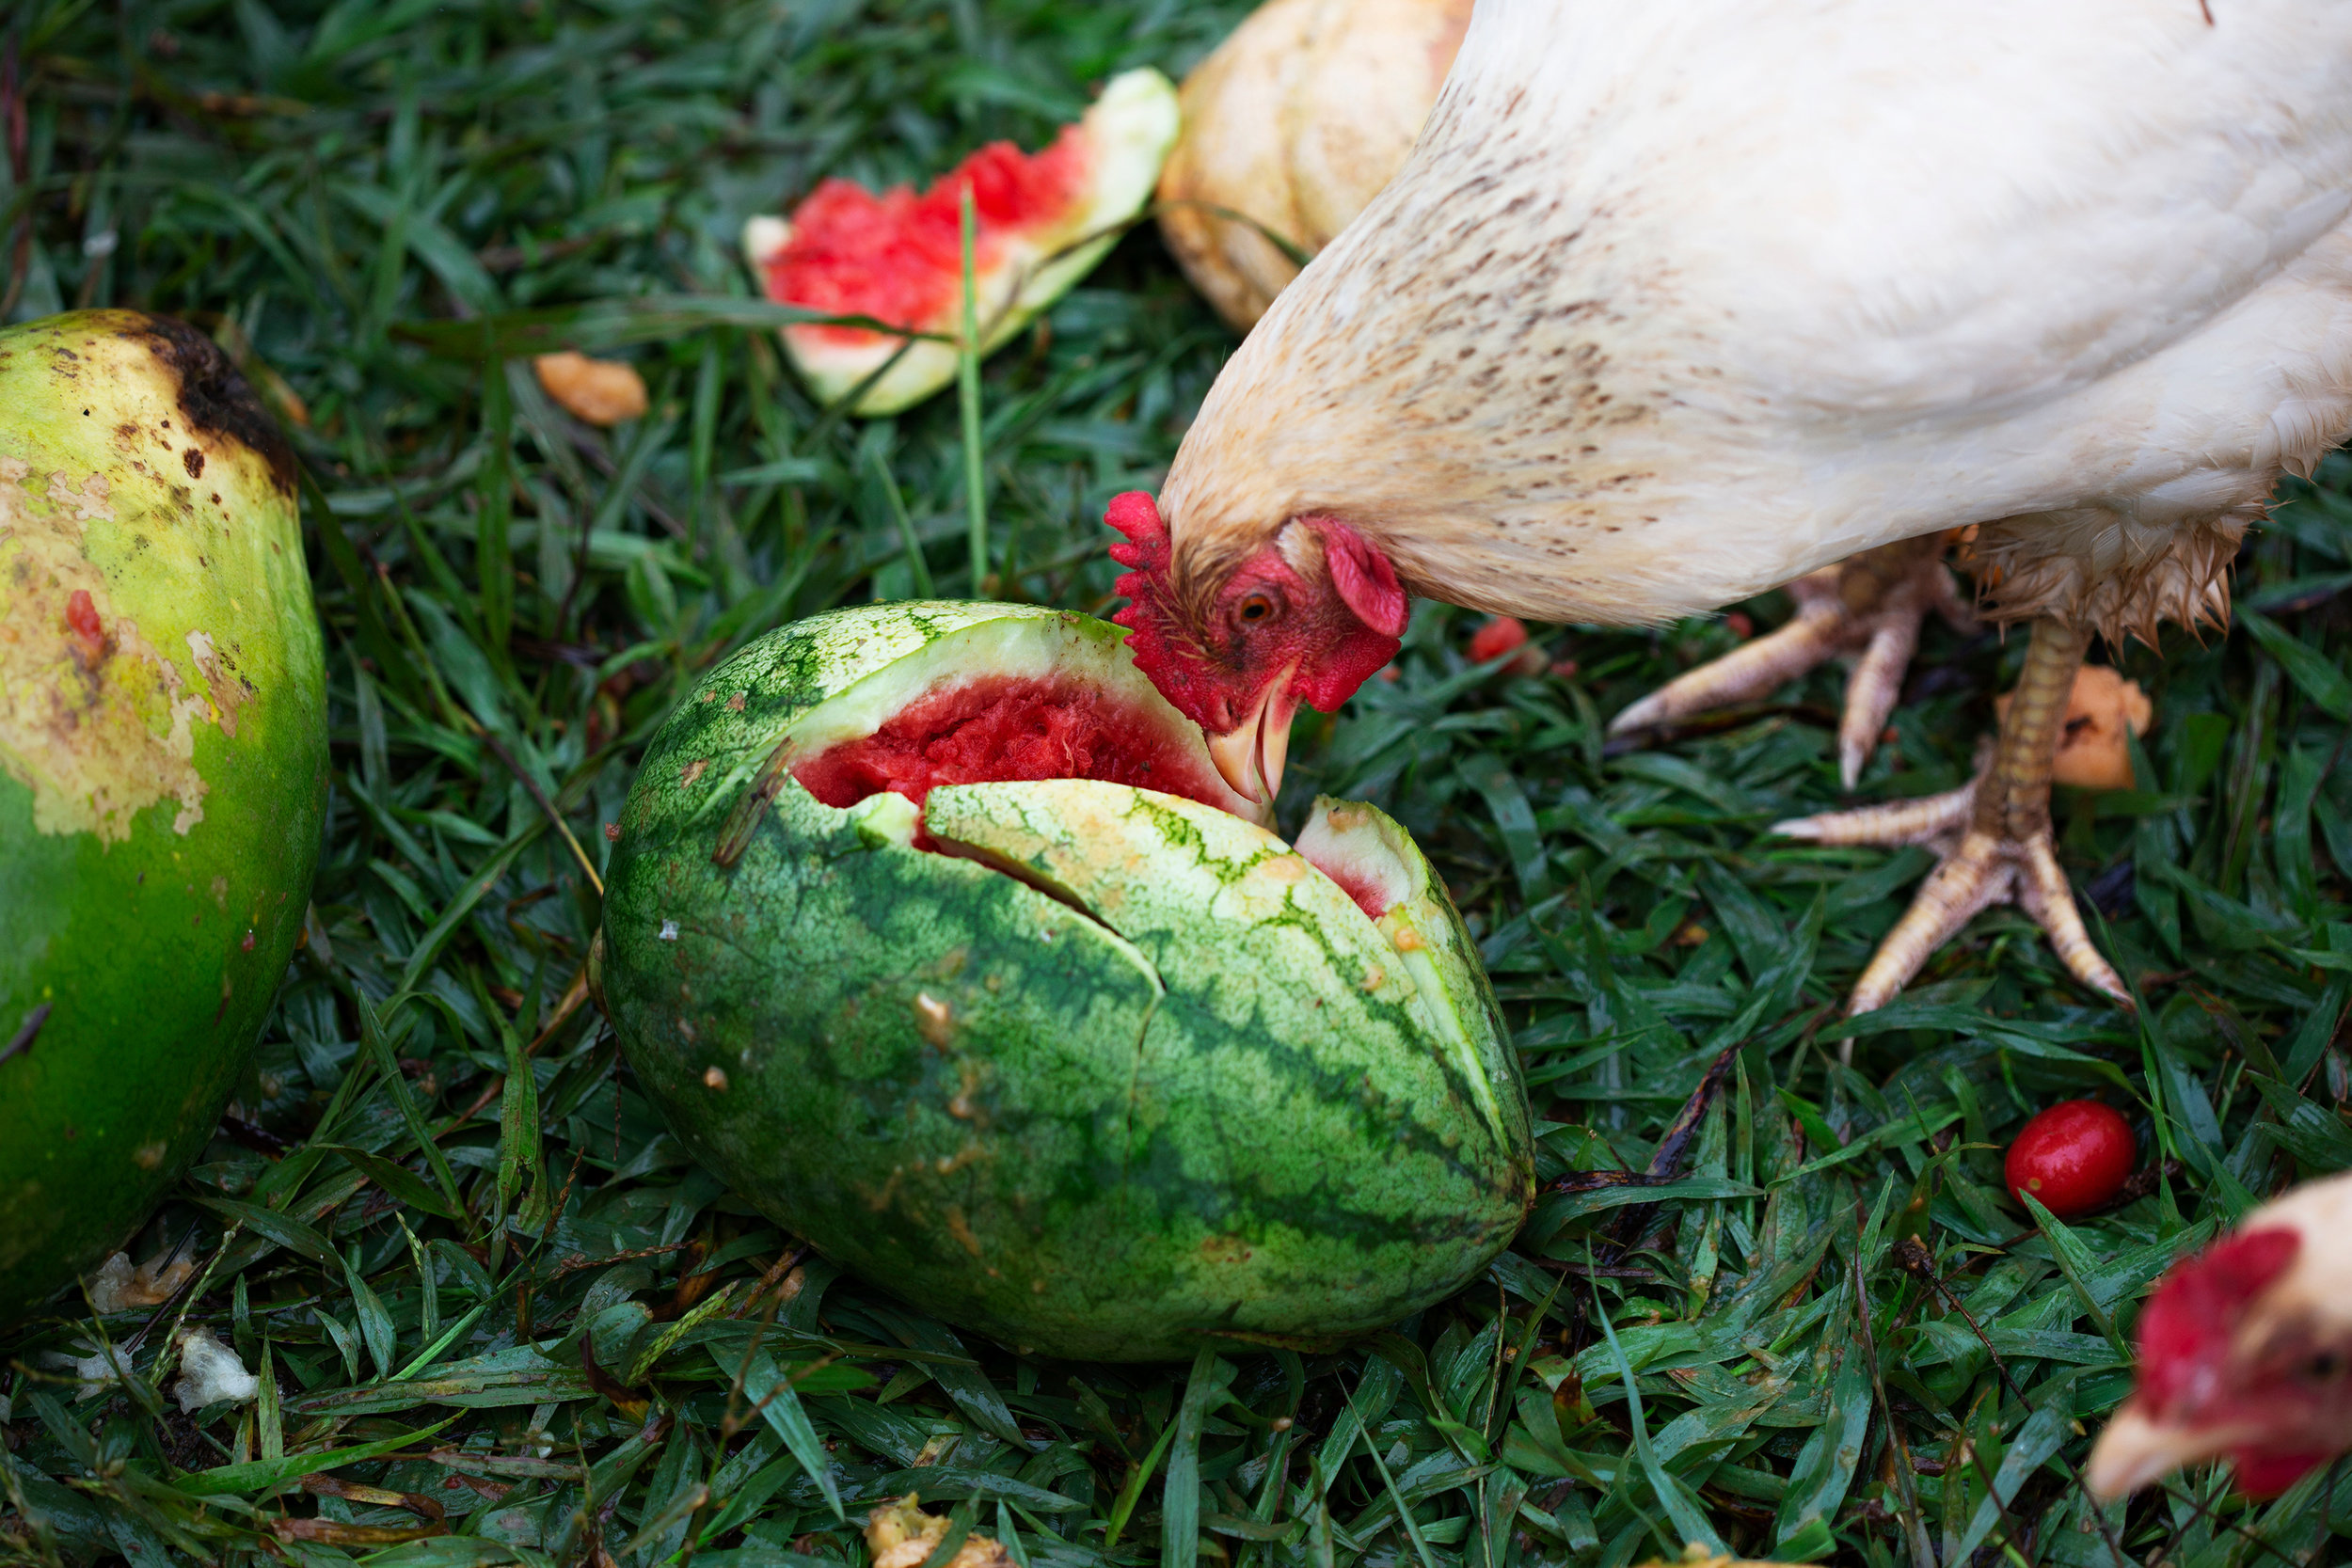 A chicken snacks on an old watermelon Aug. 2, 2018. It is important to Megan and Lalo that their farm be an ecosystem that helps sustain itself. They grow the vegetables and fruits in the dirt that is fertilized by the chickens, who then get to enjoy the benefits of the land that they help to sustain.